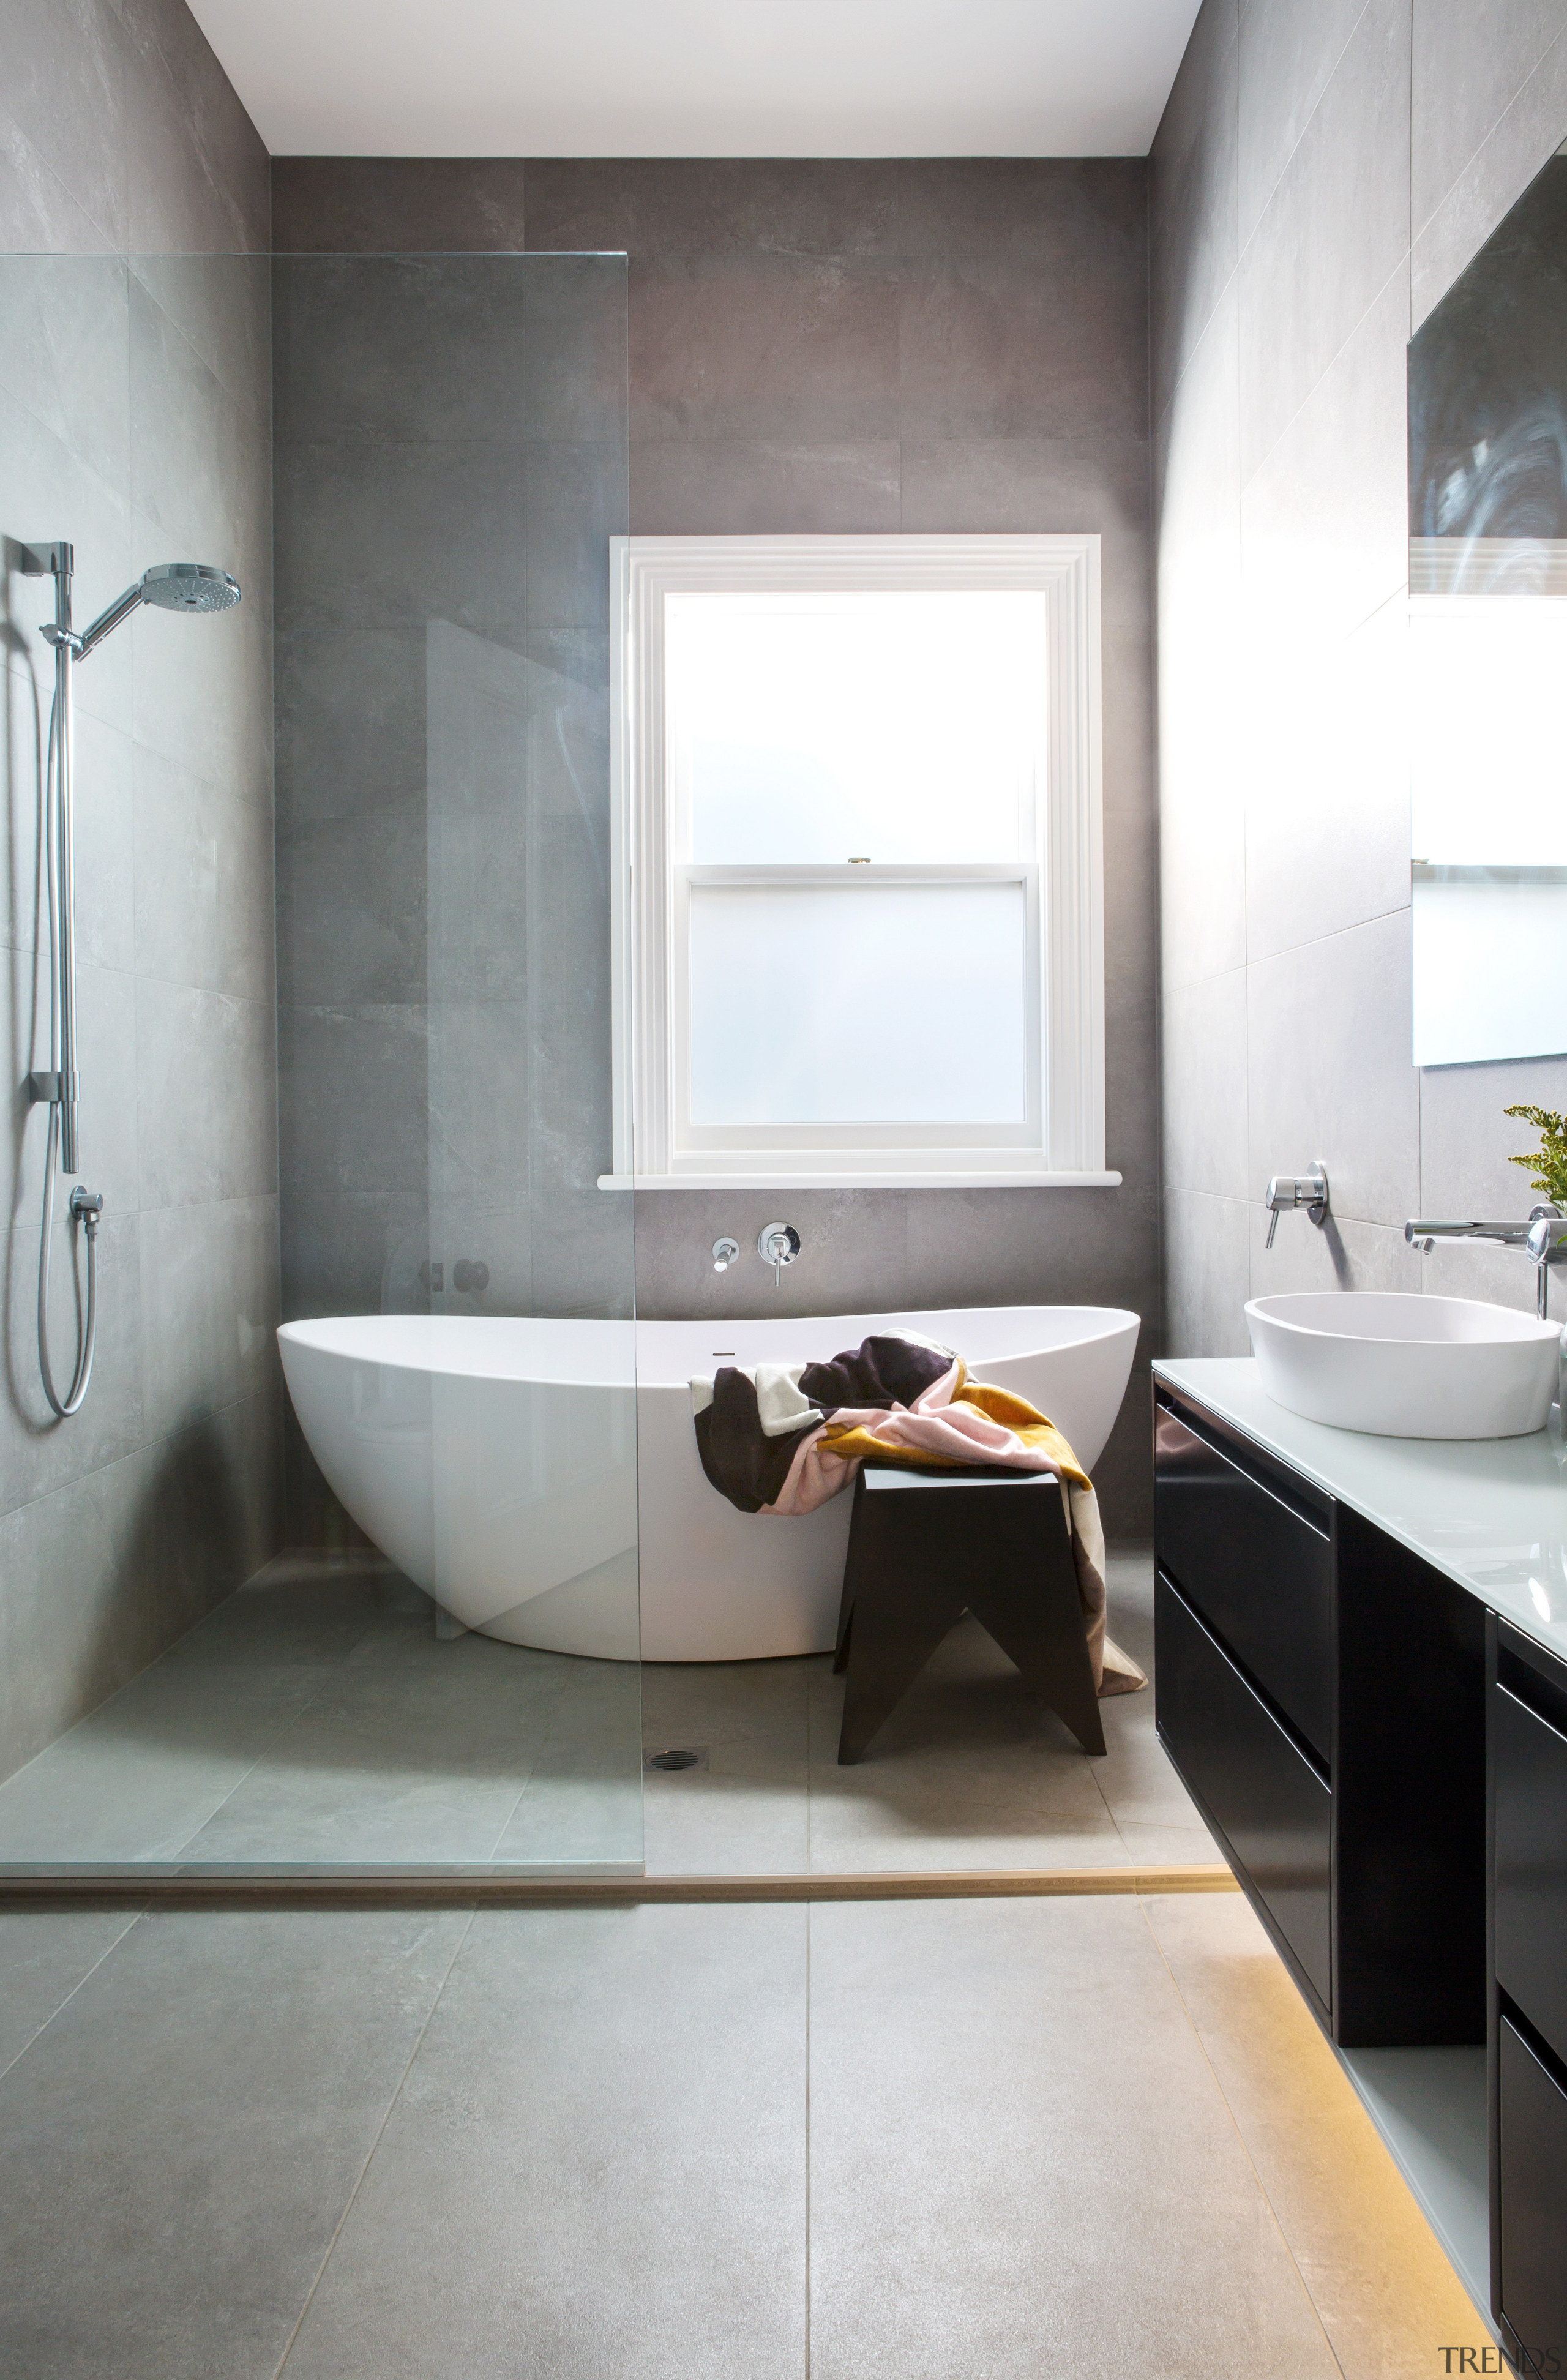 A comprehensively reinvented bathroom in the original cottage, architecture, bathroom, bathroom accessory, bathroom cabinet, floor, home, interior design, product design, room, sink, tap, tile, wall, white, gray